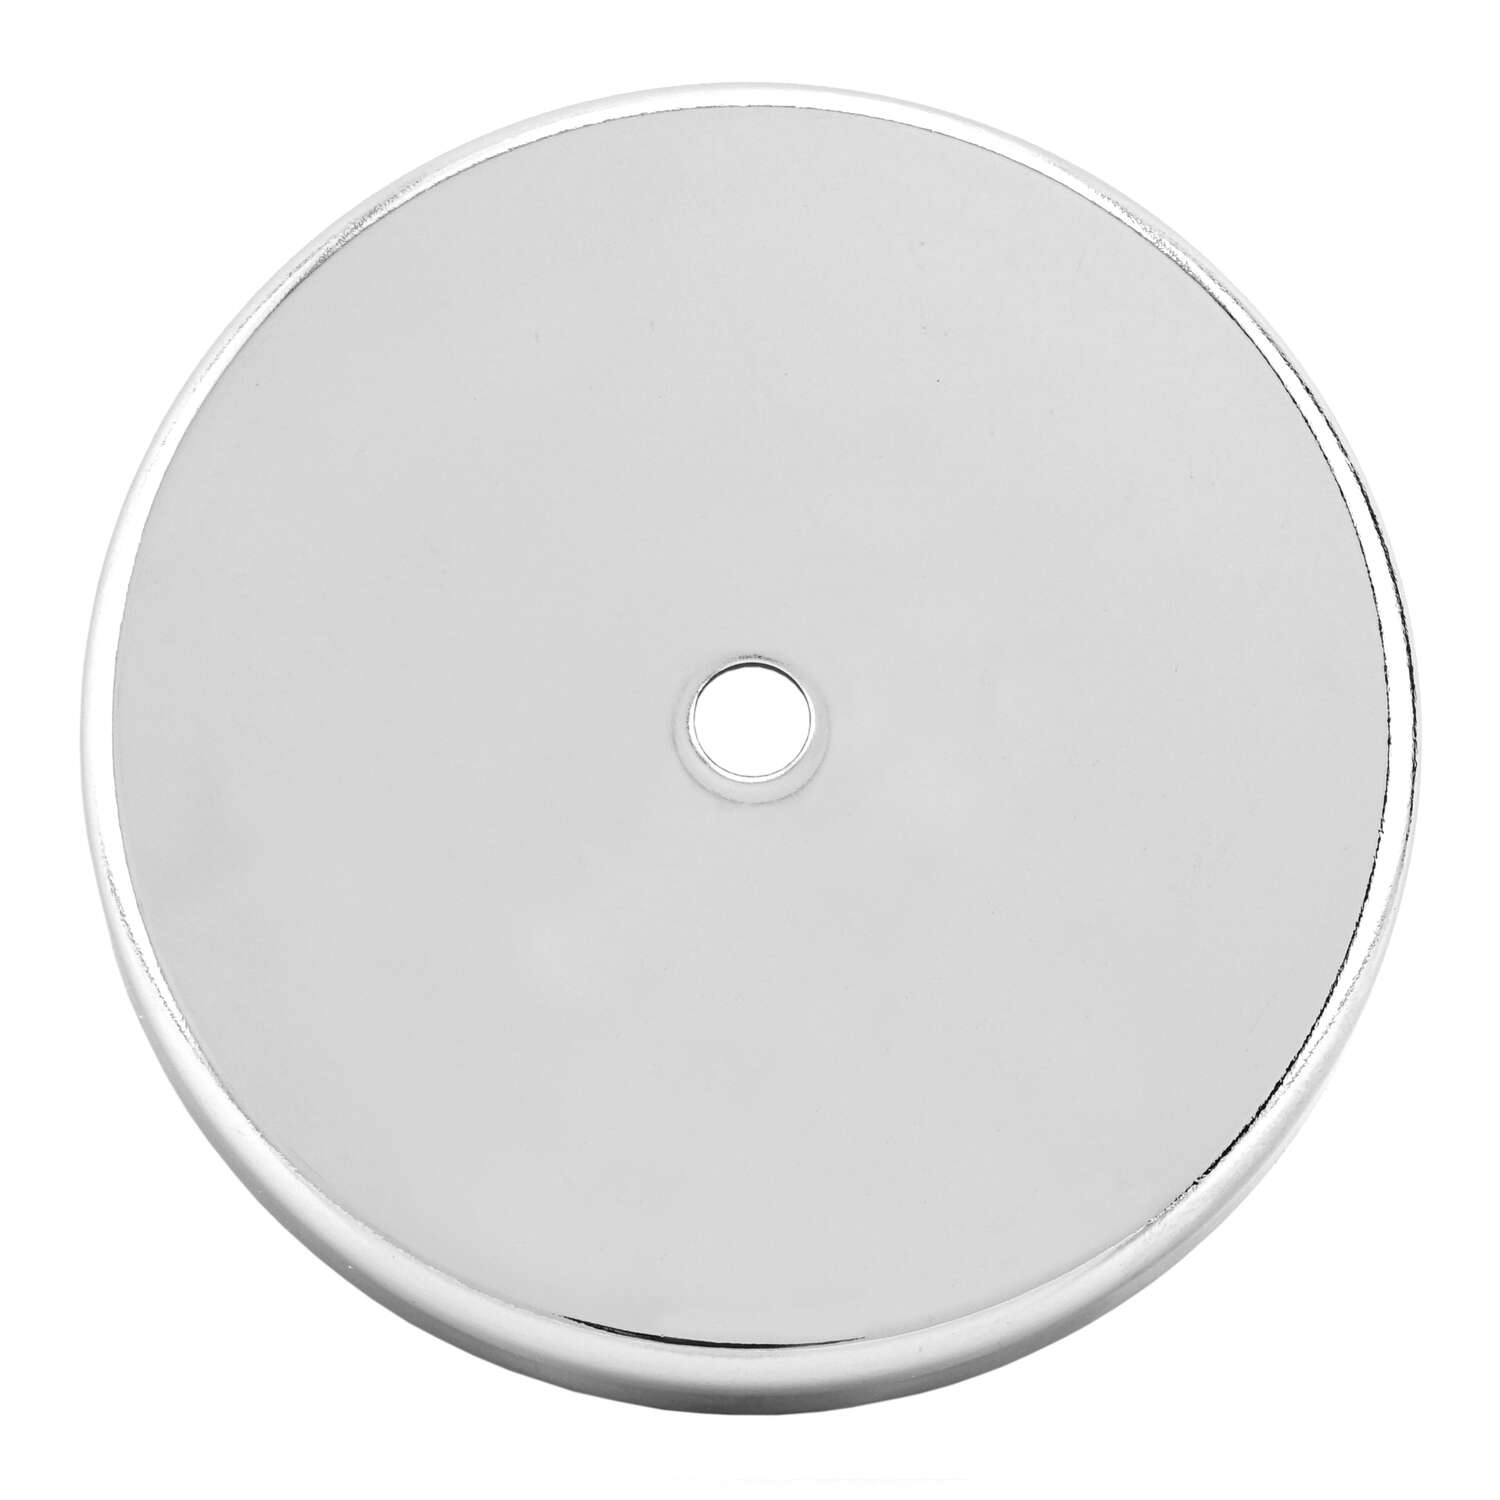 Master Magnetics  The Magnet Source  .303 in. Ceramic  Round Base  Round Base Magnet  3.4 MGOe Silve